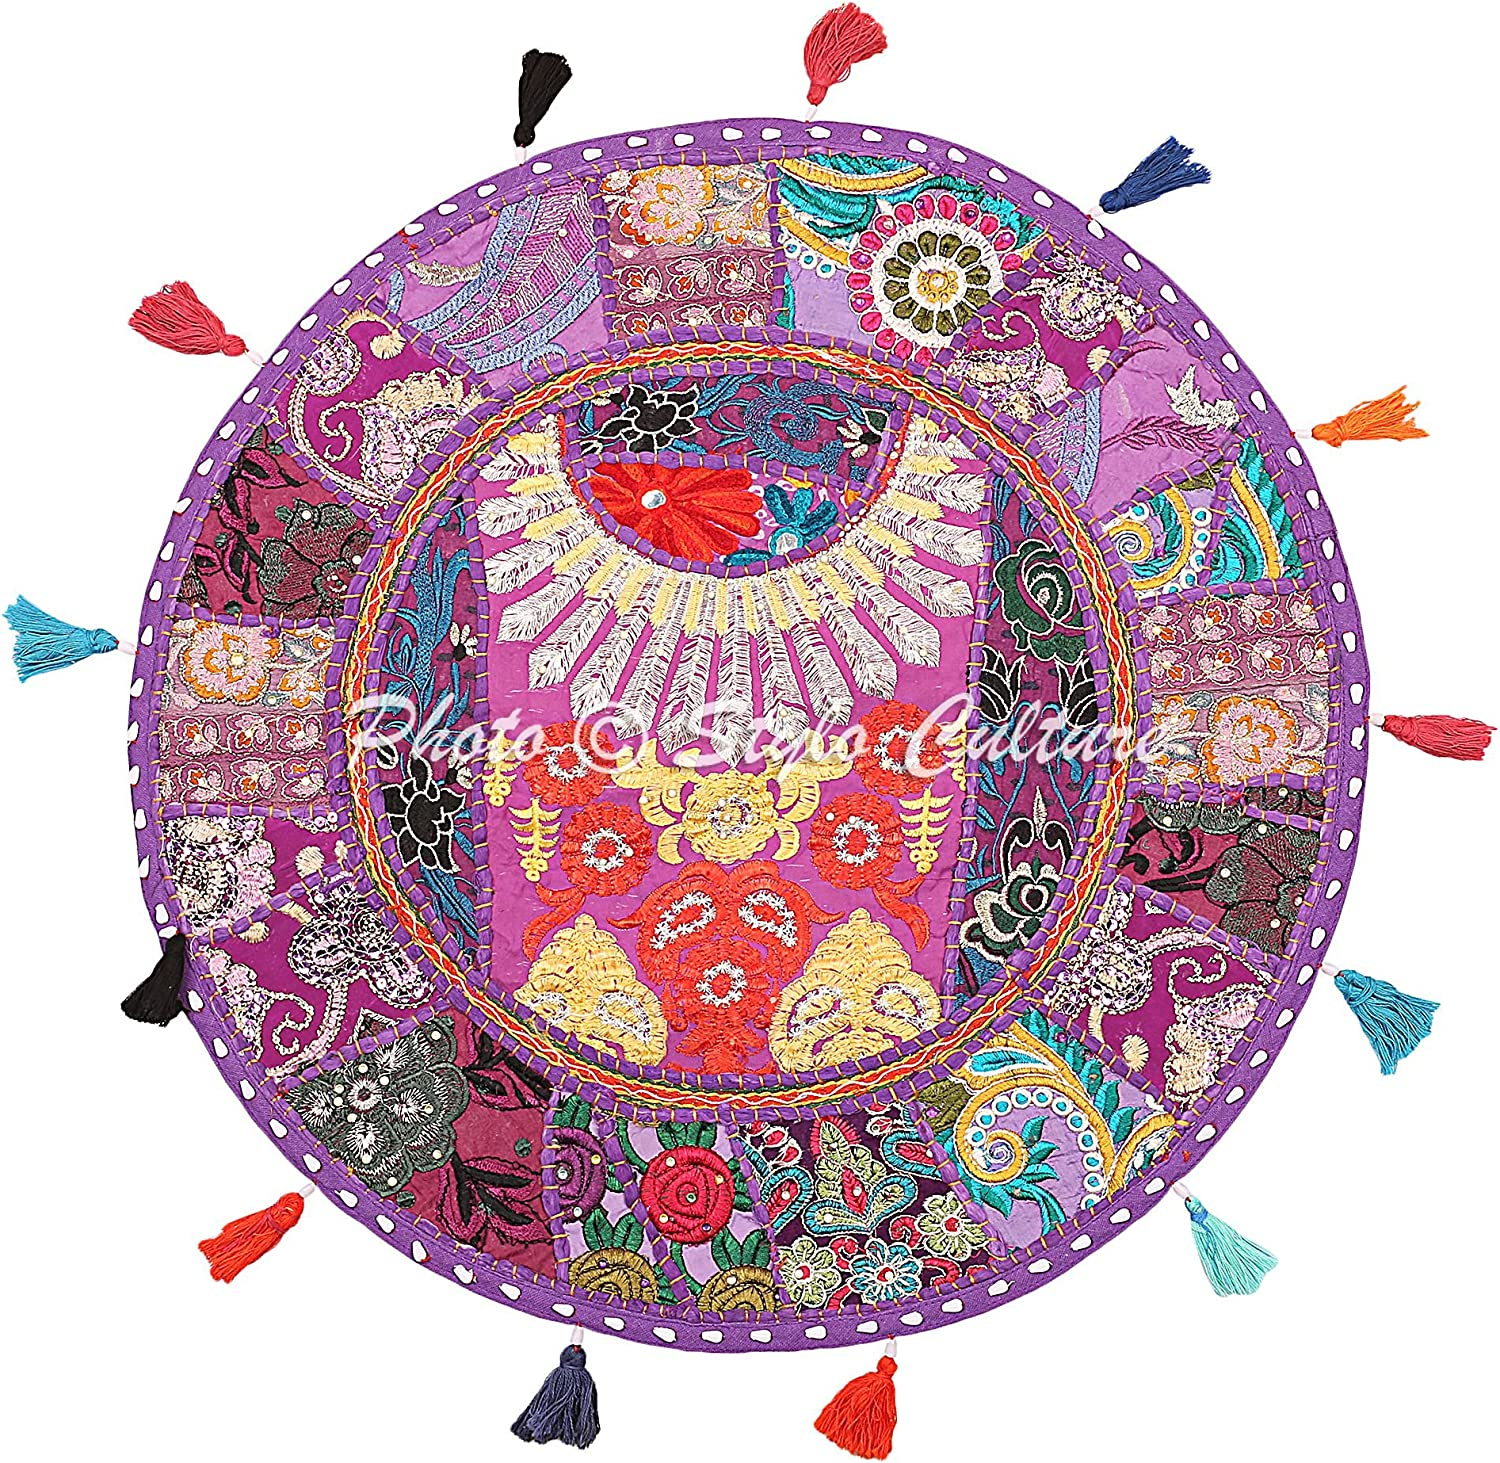 Stylo Culture Ethnic Yoga Pillows for Sitting On Floor Vintage Patchwork Pouf Cover Purple 18x18 Decorative Round Decor Seating Tuffet Seat Pouf Cover Footstool Cotton Embroidered 1 Pc